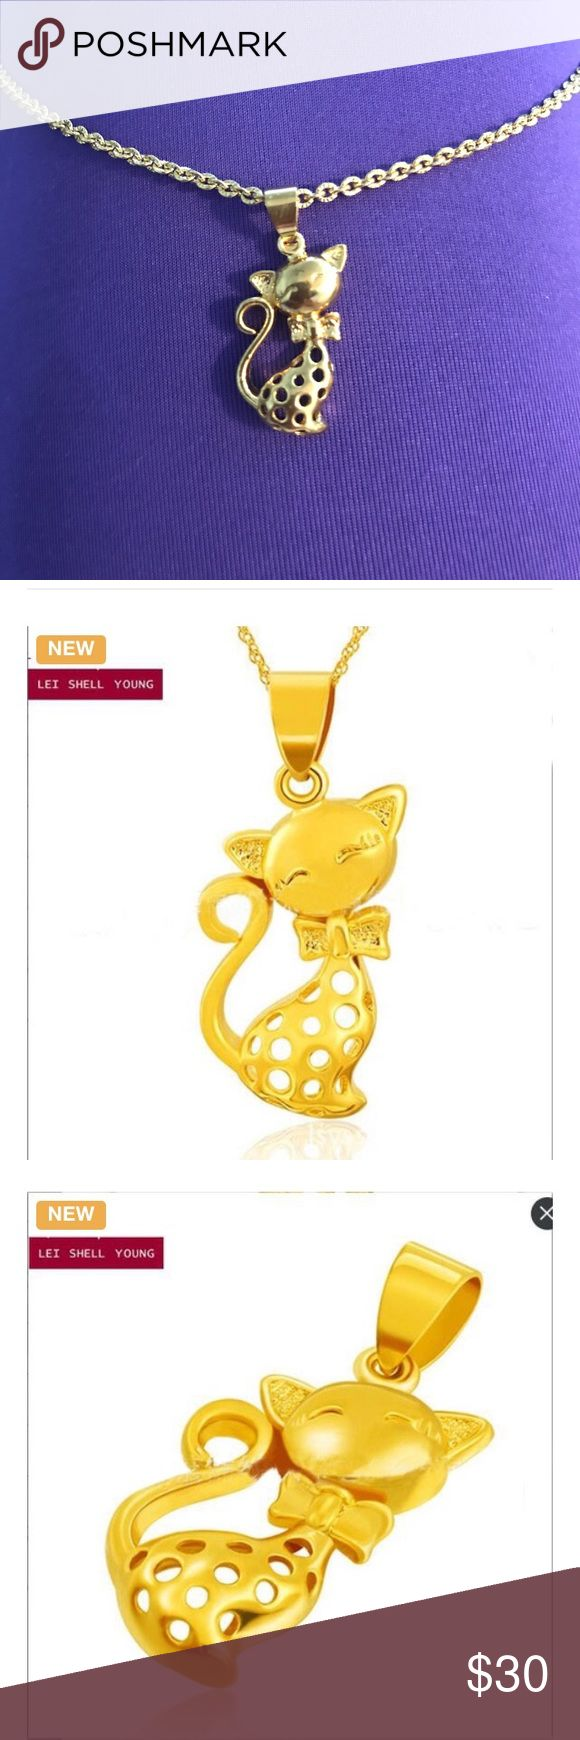 """Kitty necklace 10K gold plated Super cute. 18"""" chain. 1"""" pendant. Jewelry Necklaces"""